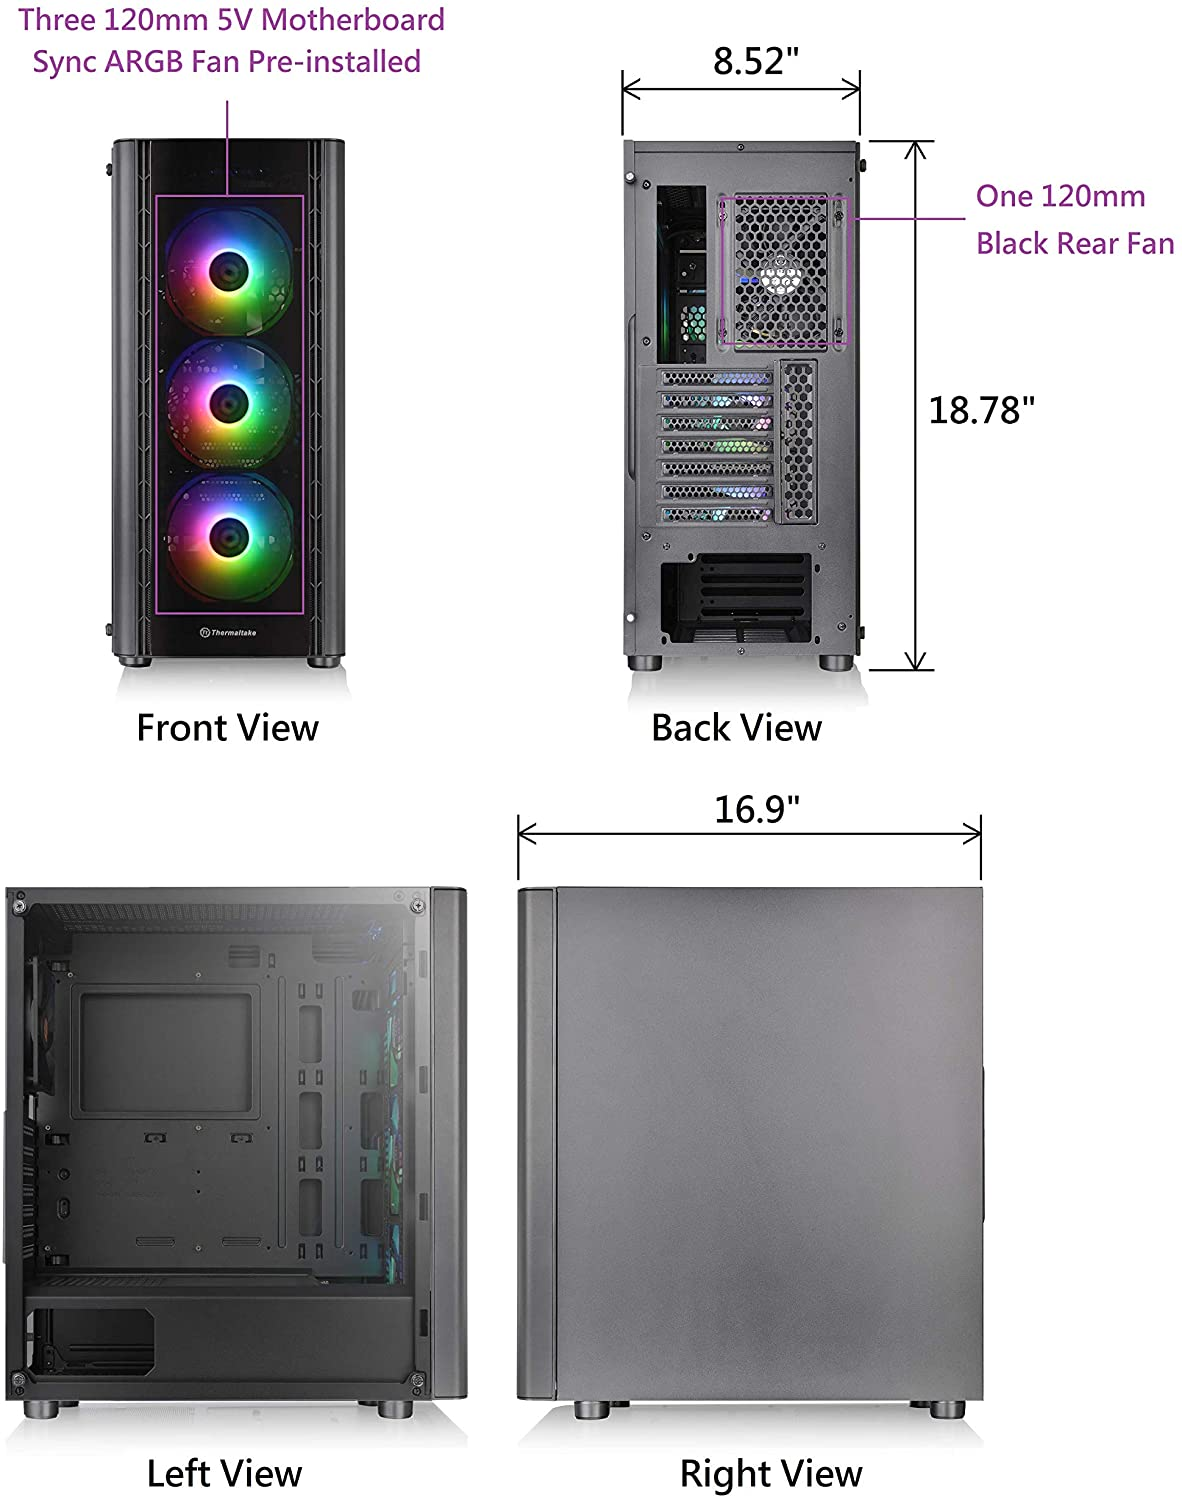 Thermaltake V250 Motherboard Sync ARGB ATX Mid-Tower Chassis 8